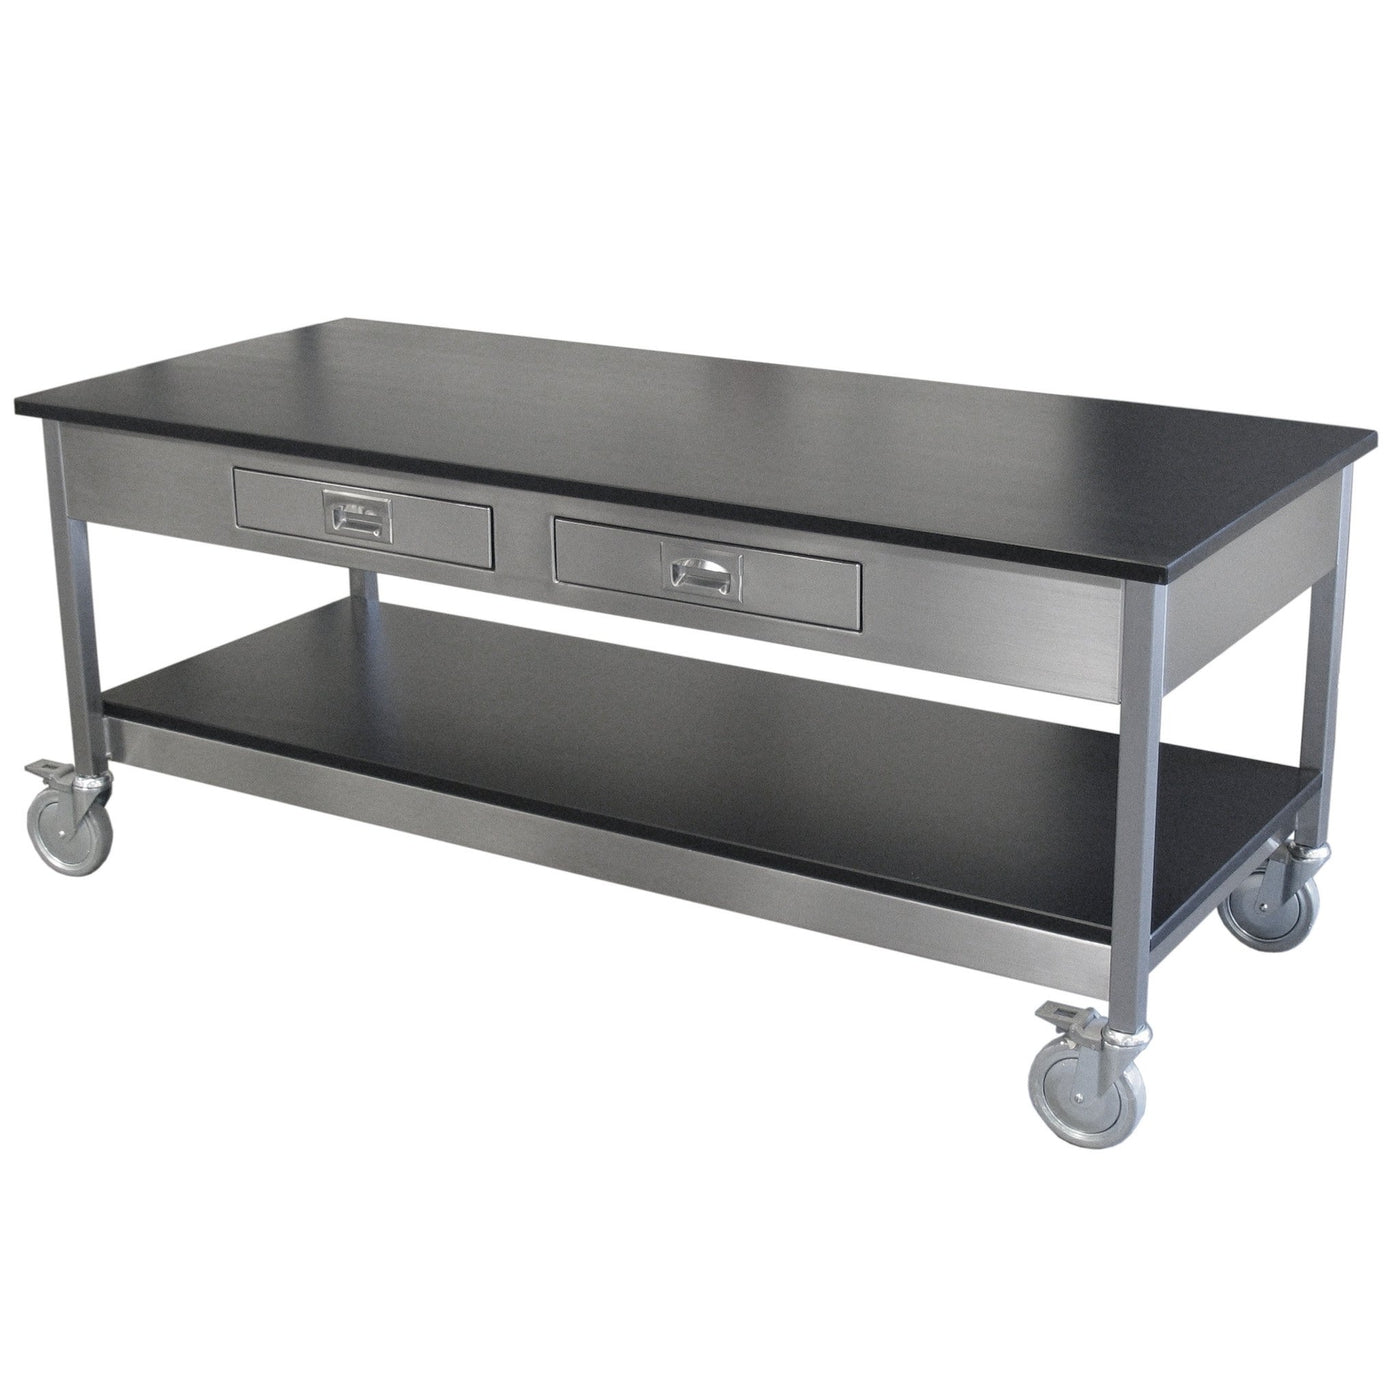 Epoxy Lab Table | Mortech Manufacturing Company Inc. Quality Stainless  Steel Autopsy, Morgue, Funeral Home, Necropsy, Veterinary / Anatomy, ...